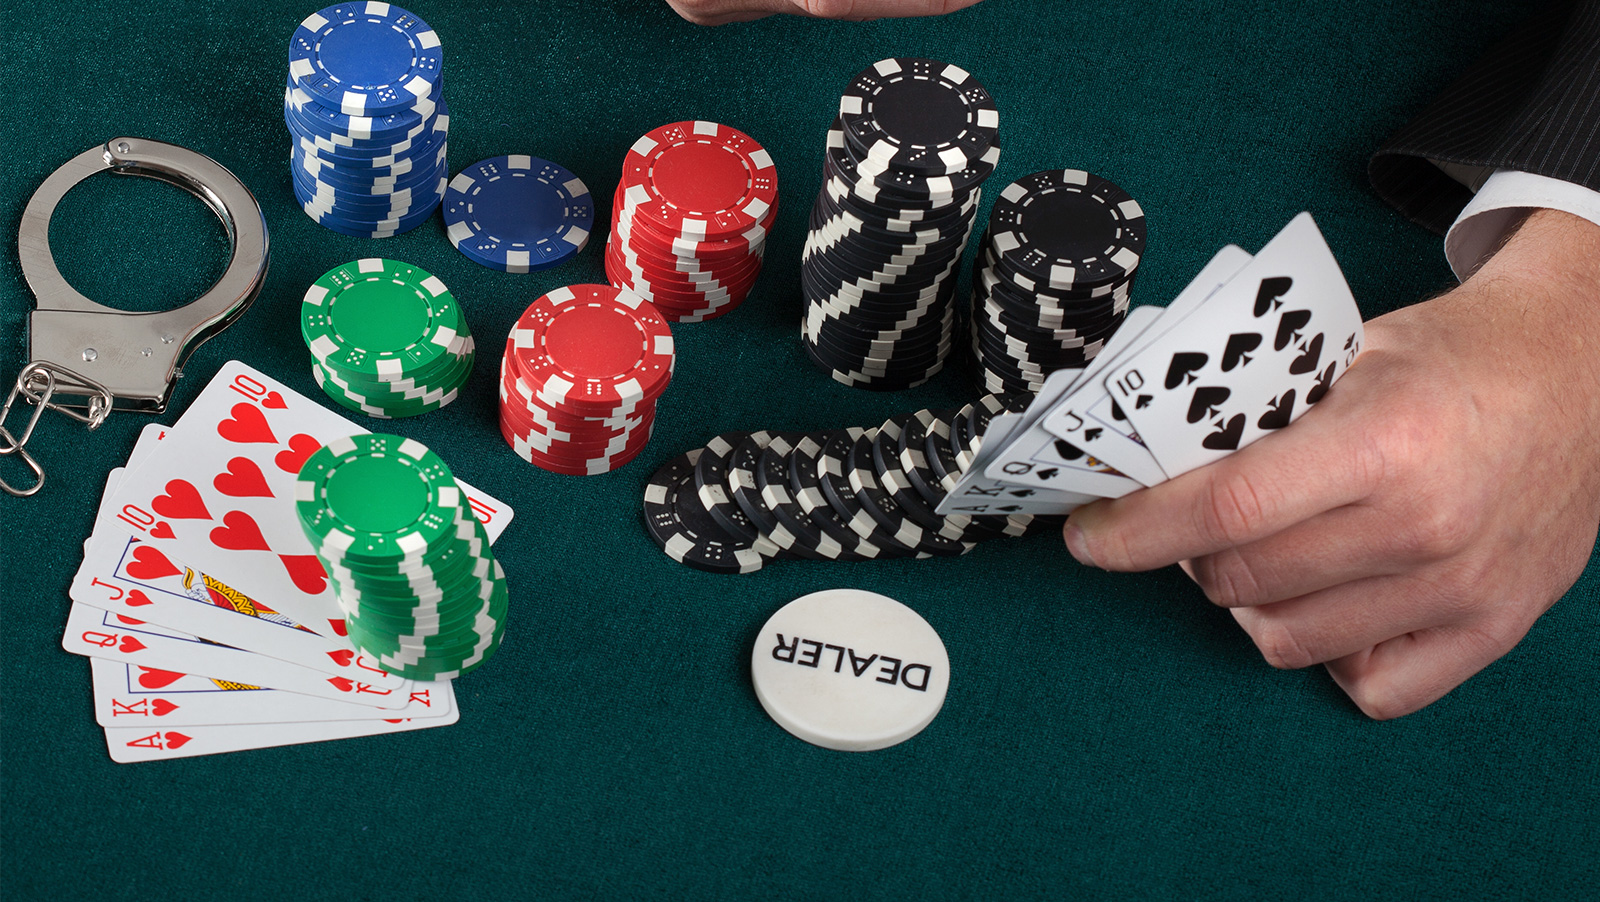 Illegal casino in North Carolina busted, arrests pending